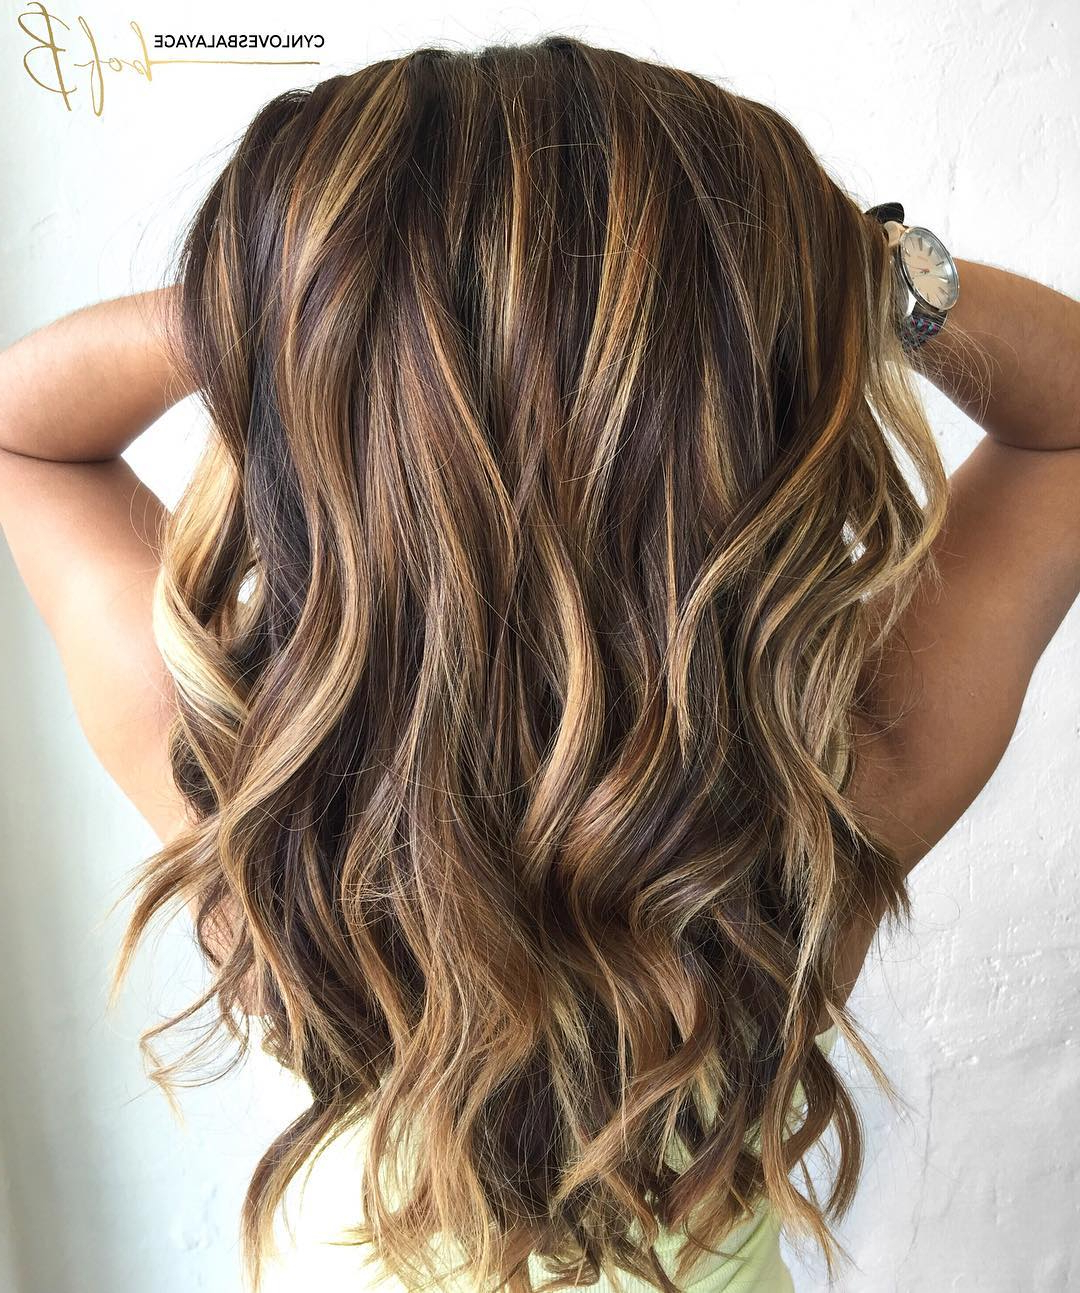 60 Looks With Caramel Highlights On Brown And Dark Brown Hair Intended For Angelic Blonde Balayage Bob Hairstyles With Curls (View 13 of 20)